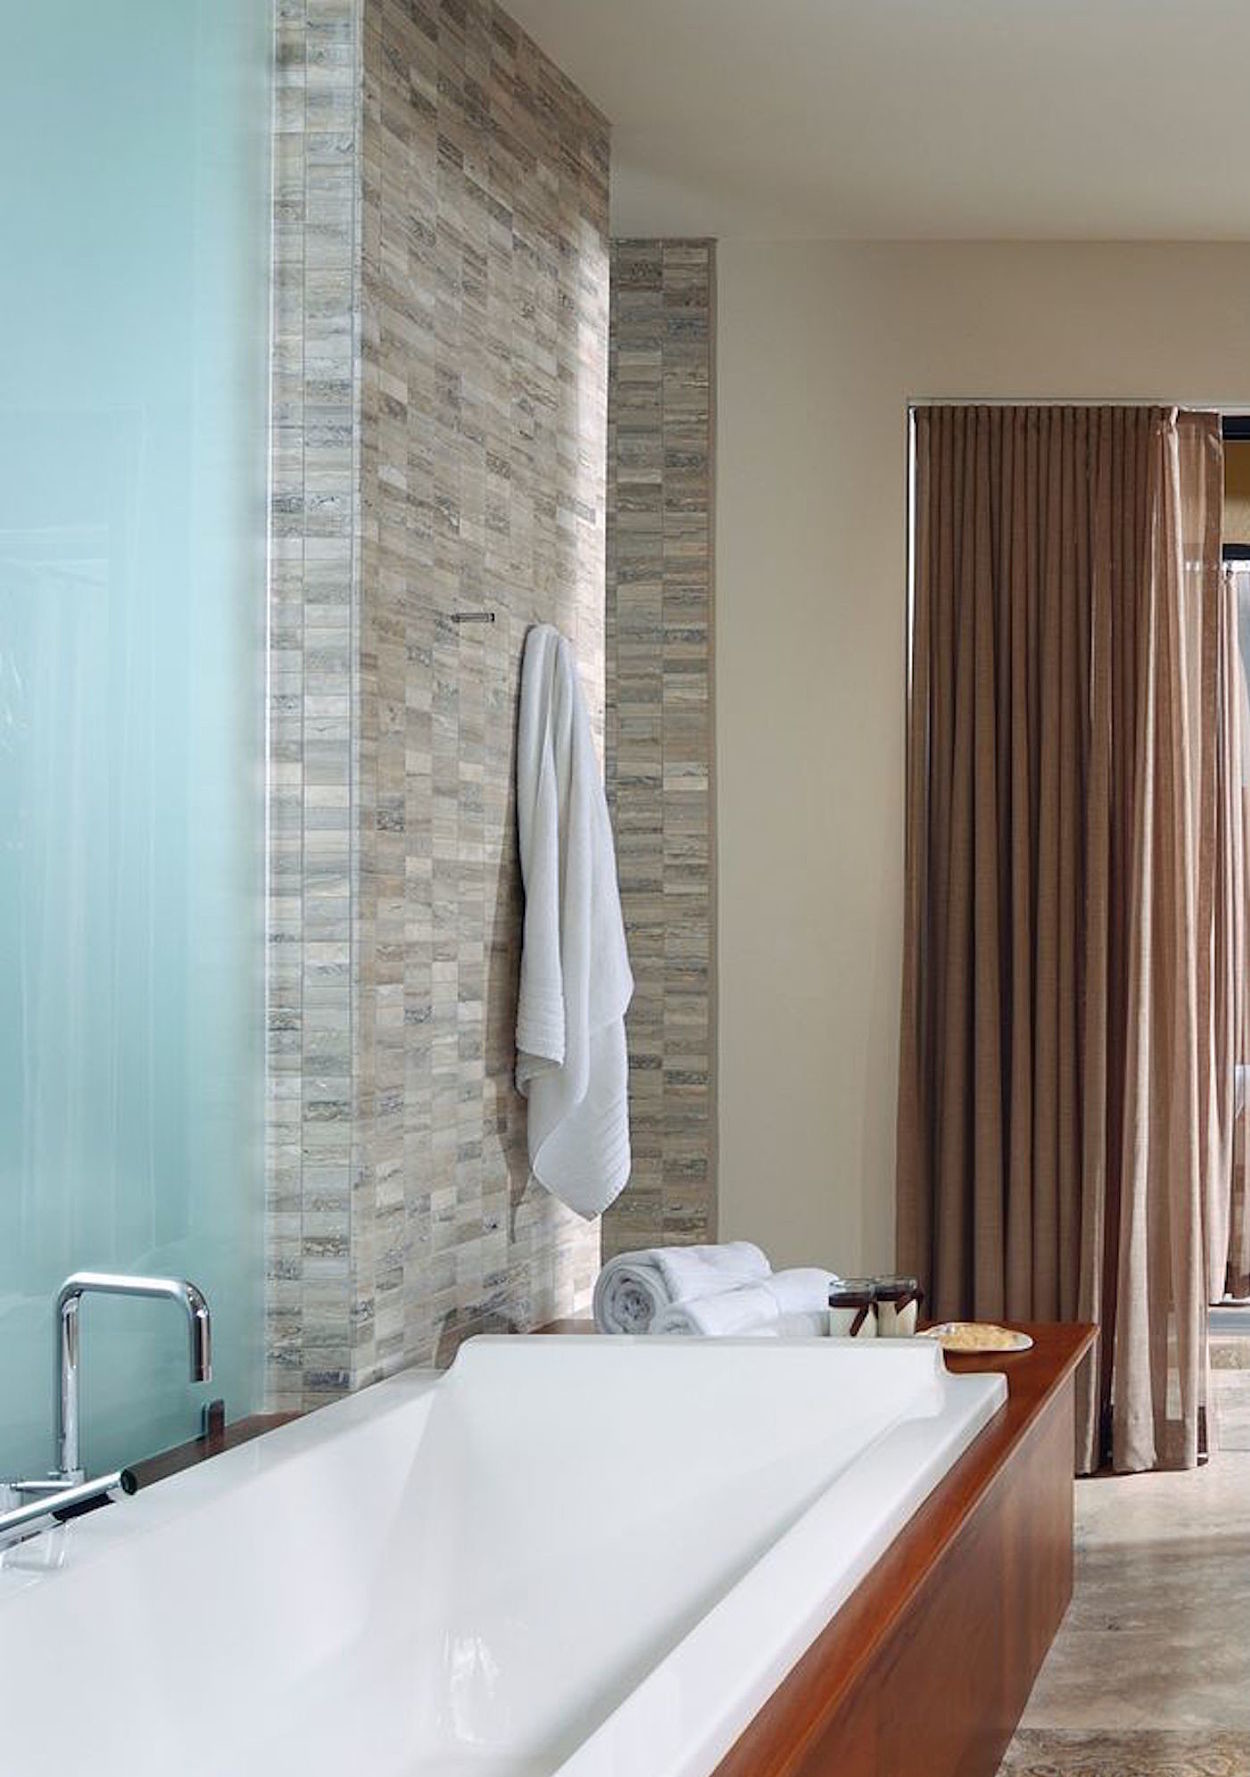 Bathroom Home Interior Design How To Turn Your Bathroom Into A Personal Home Spa Martha Stewart